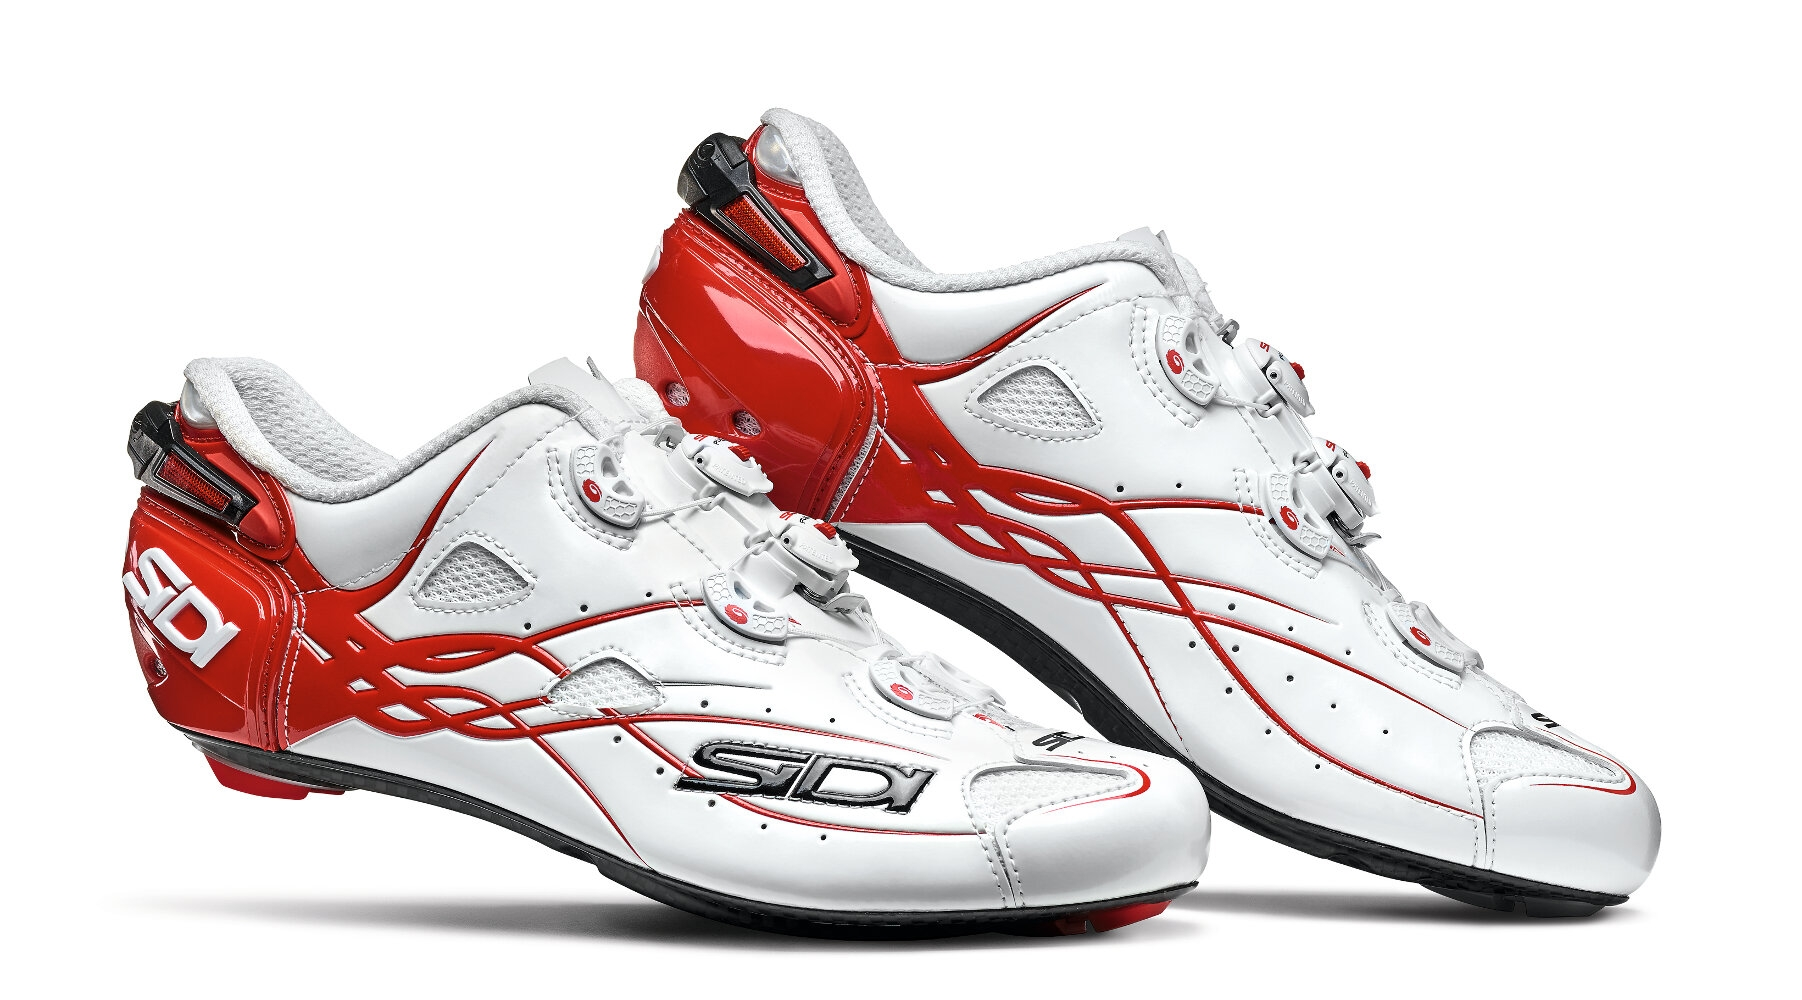 Chaussures Sidi SHOT Blanc/Rouge - 42